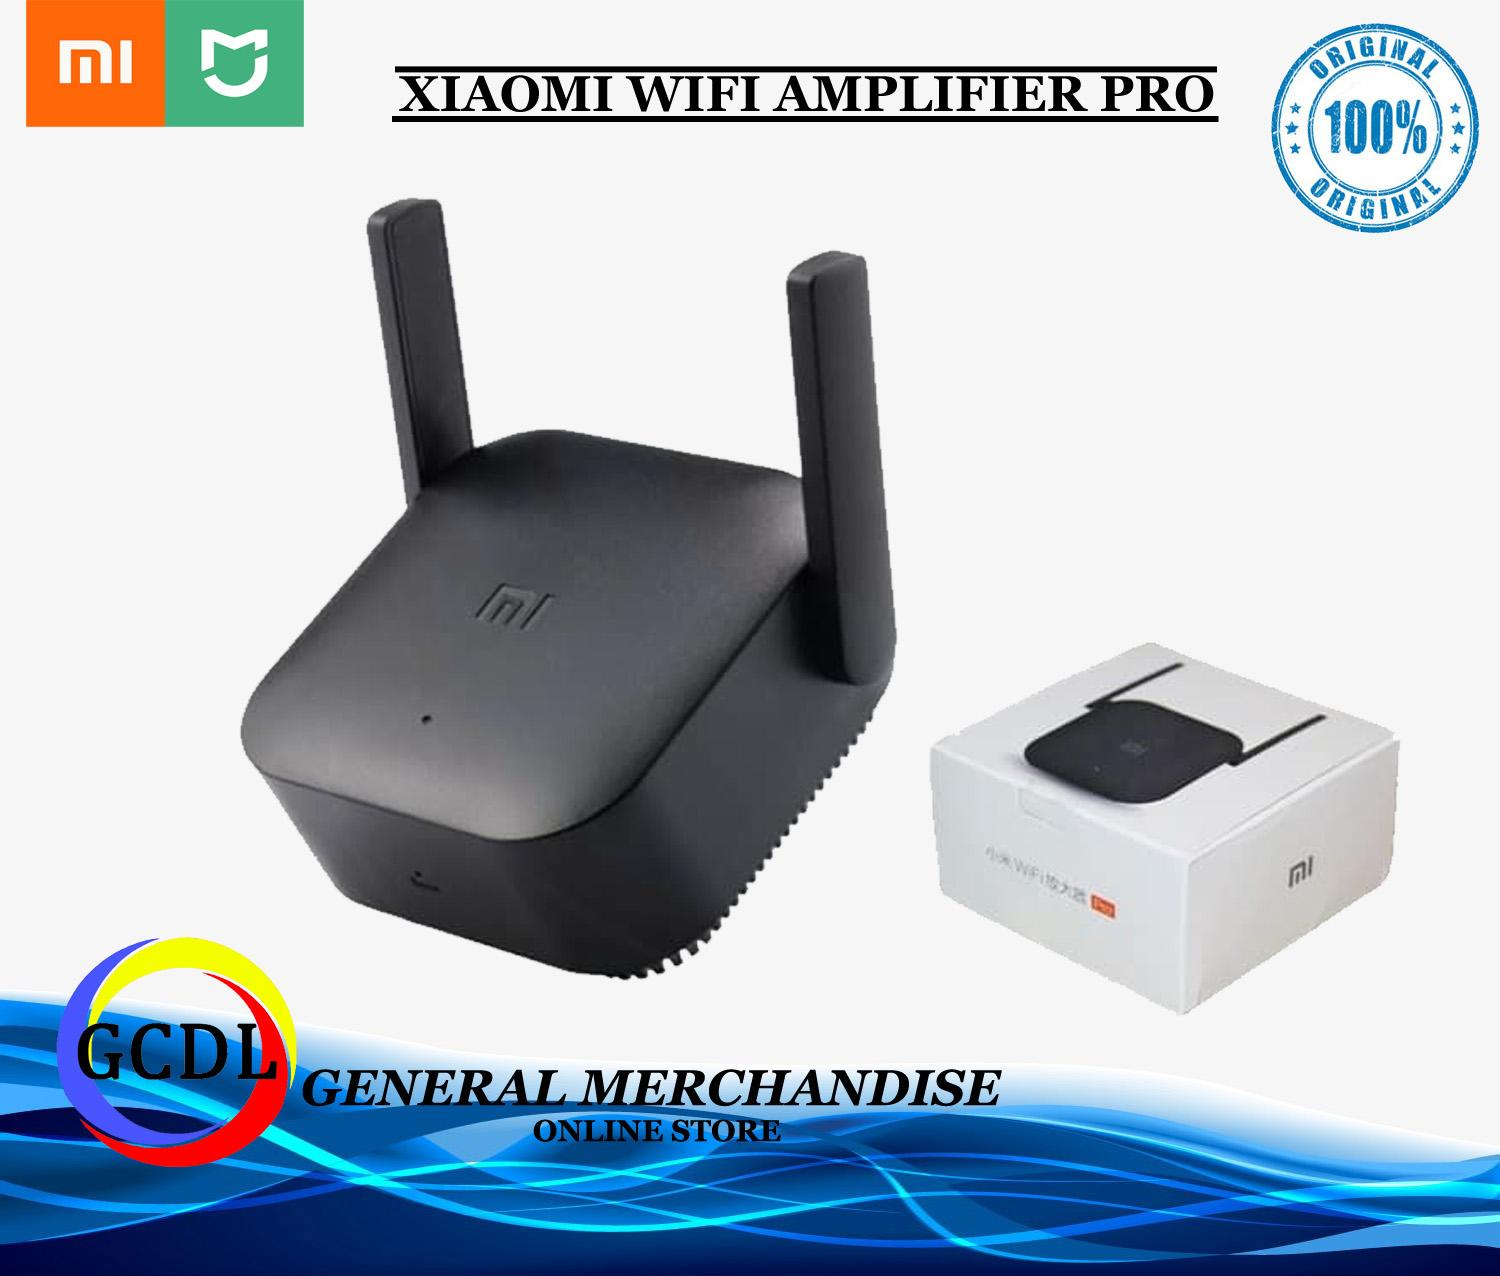 Xiaomi Routers Philippines Internet For Sale Mini Usb Wireless Router Wifi Emitter Adapter 150mbps Original Black Pro 300m Amplifier Network Expander Repeater